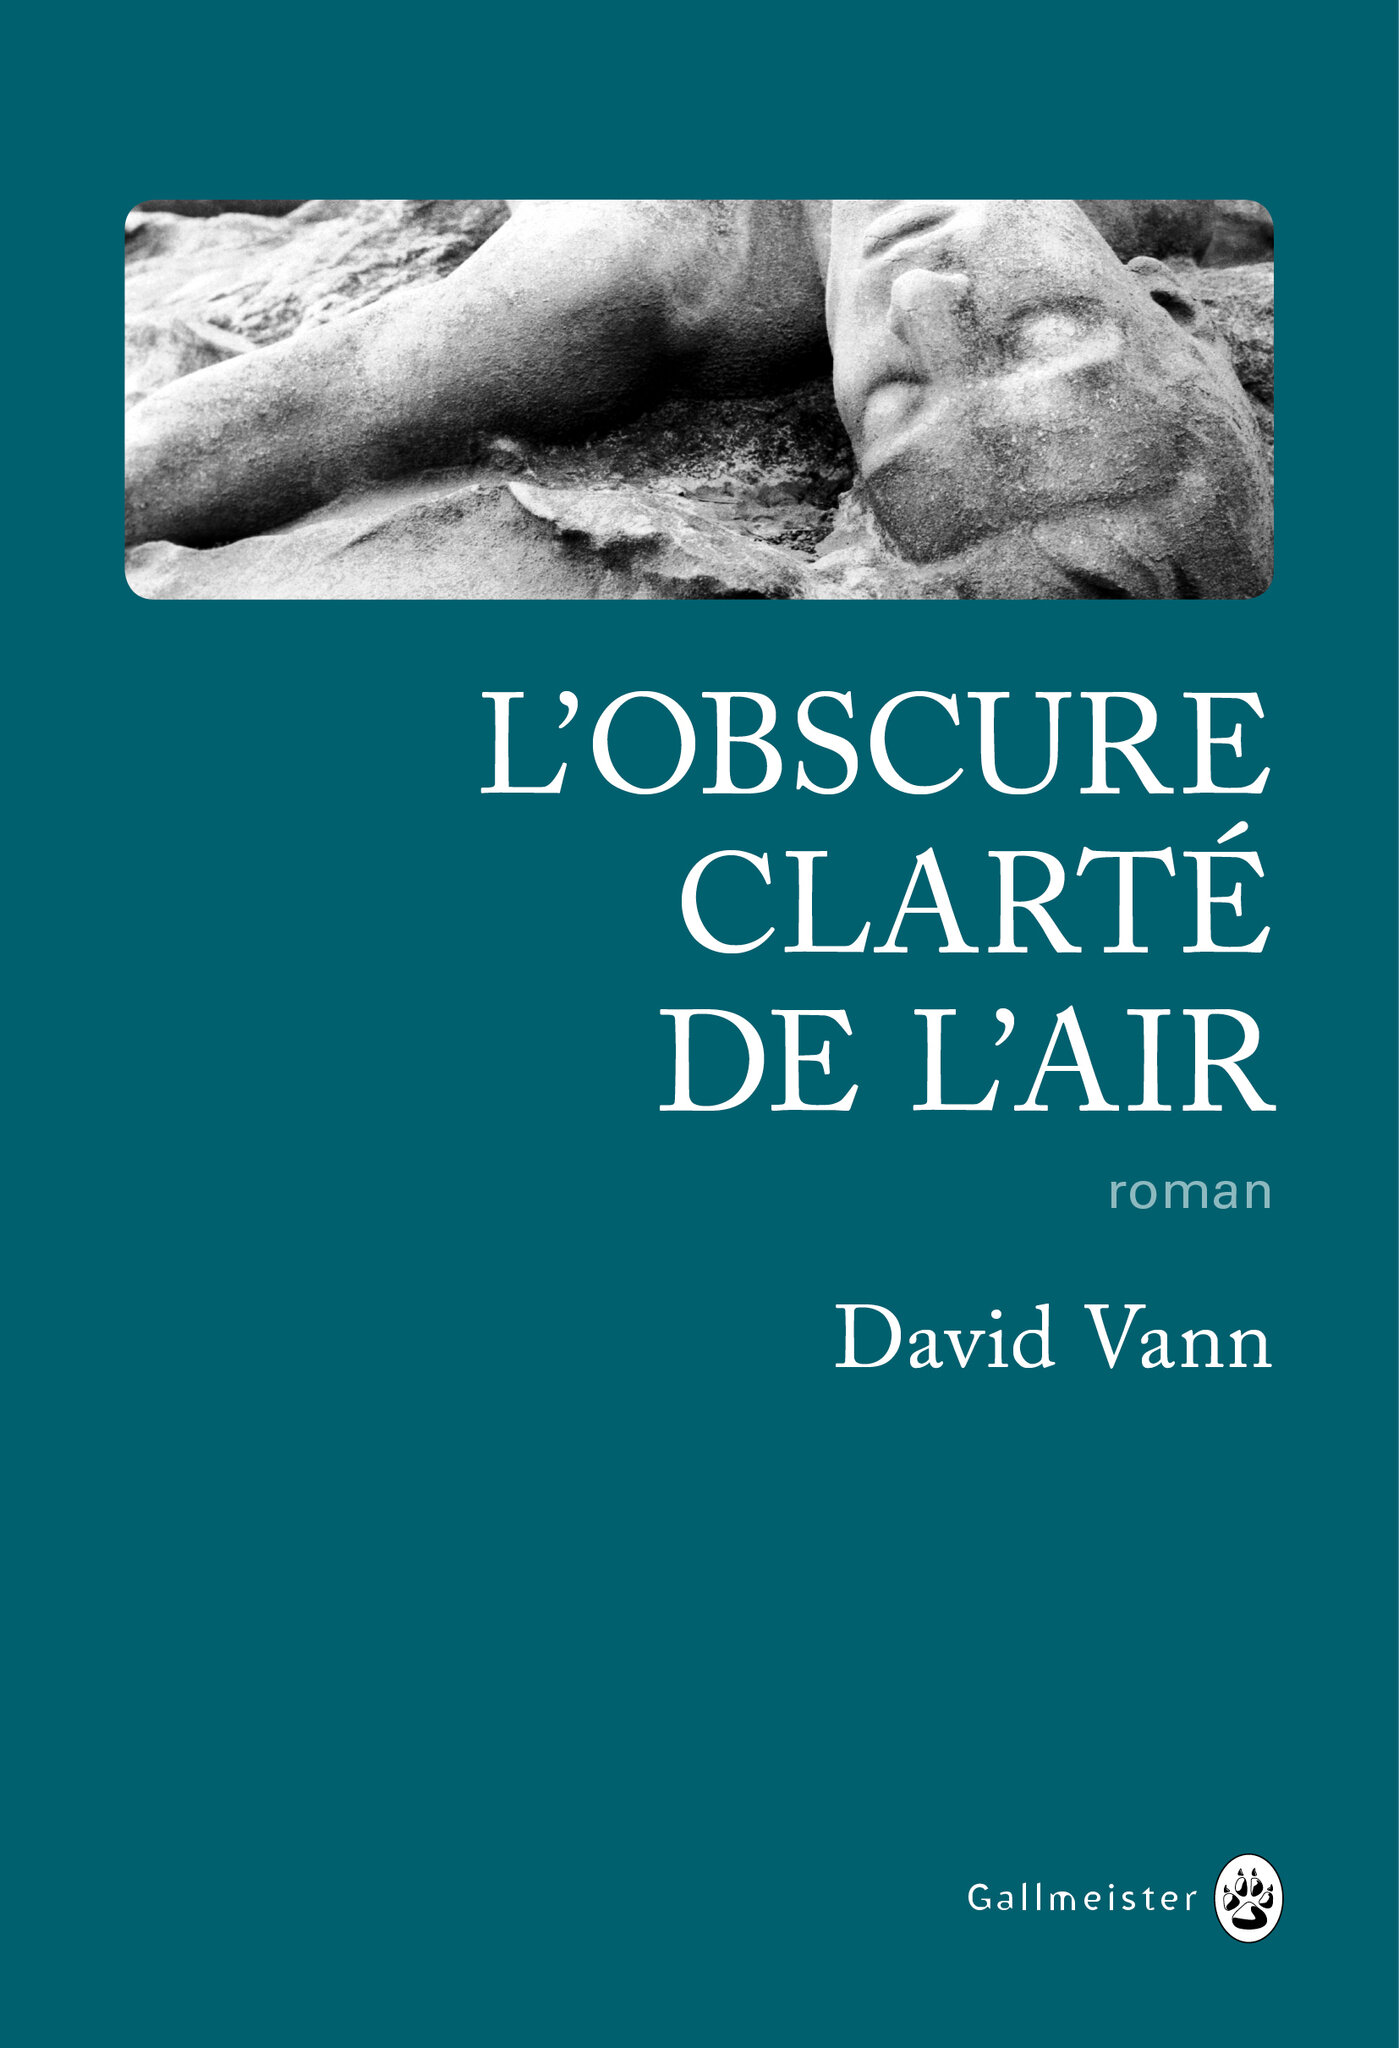 David Vann - L'obscure clarté de l'air